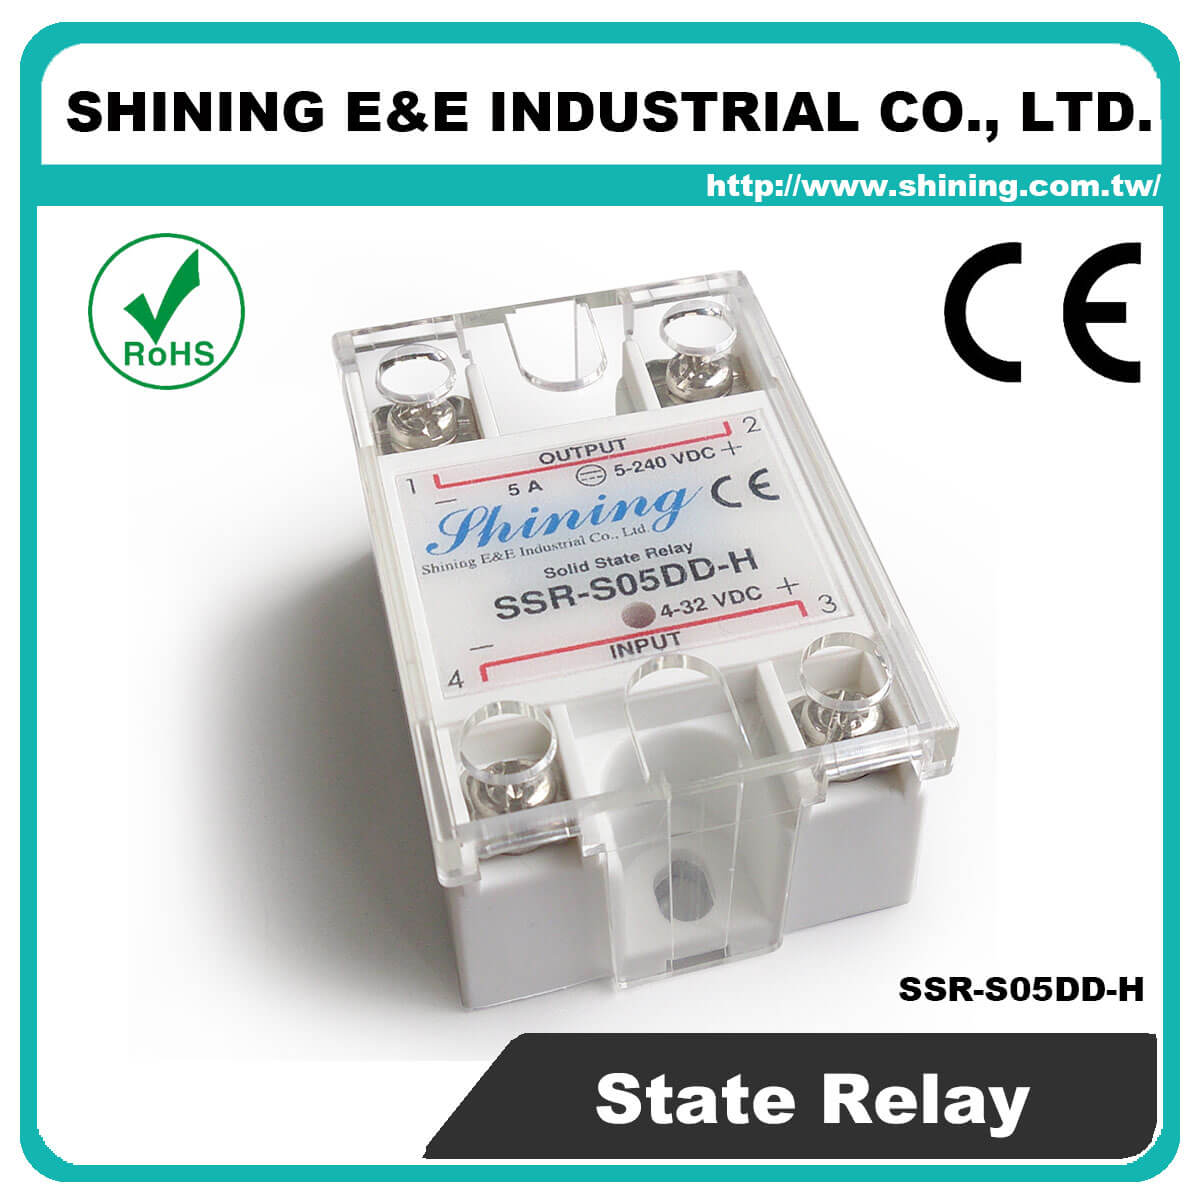 Ssr Sxxdd H Series Vrtoac Single Phase Solid State Relay Latch Up S05dd Dc To 5a 120vdc